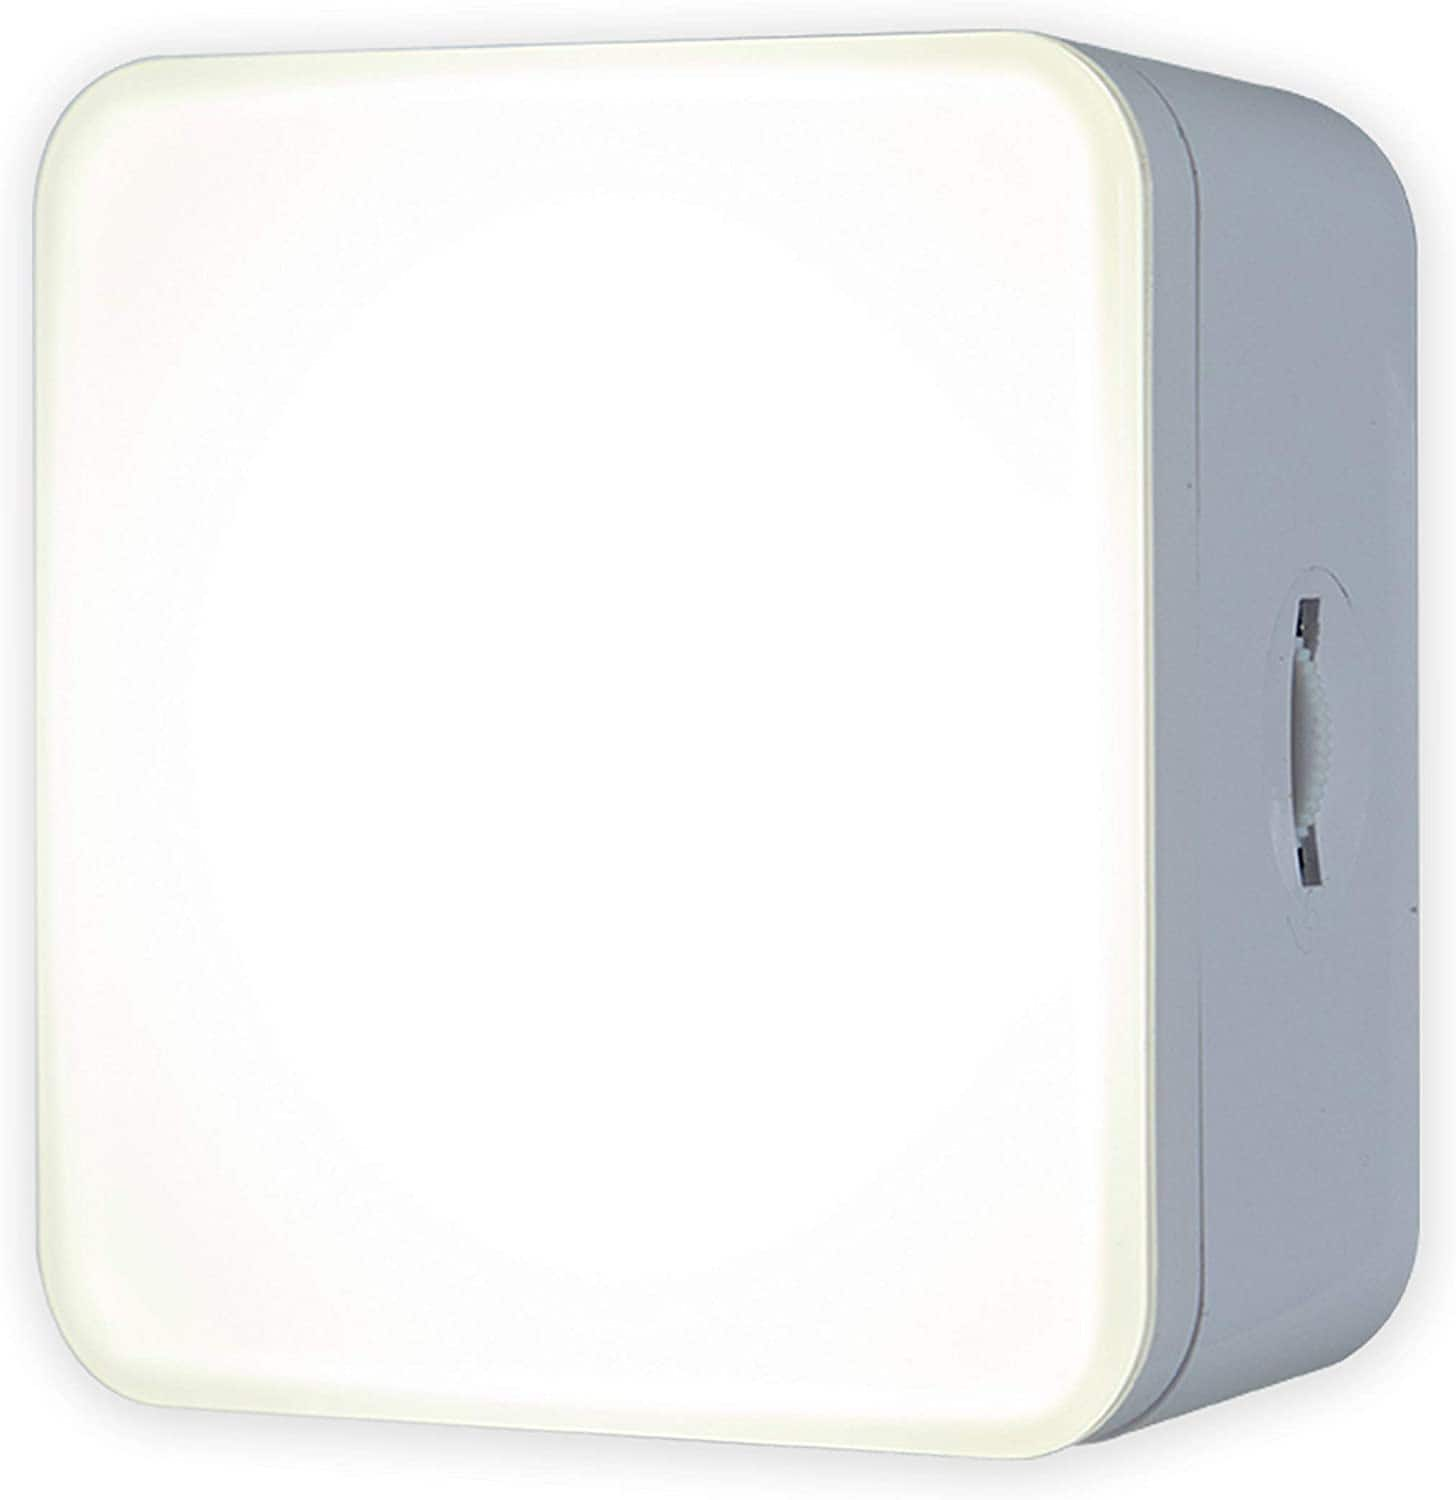 GE Dimmable LED Night Light Plug-in w/ Dusk-to-Dawn Sensor for $5.99 + FSSS